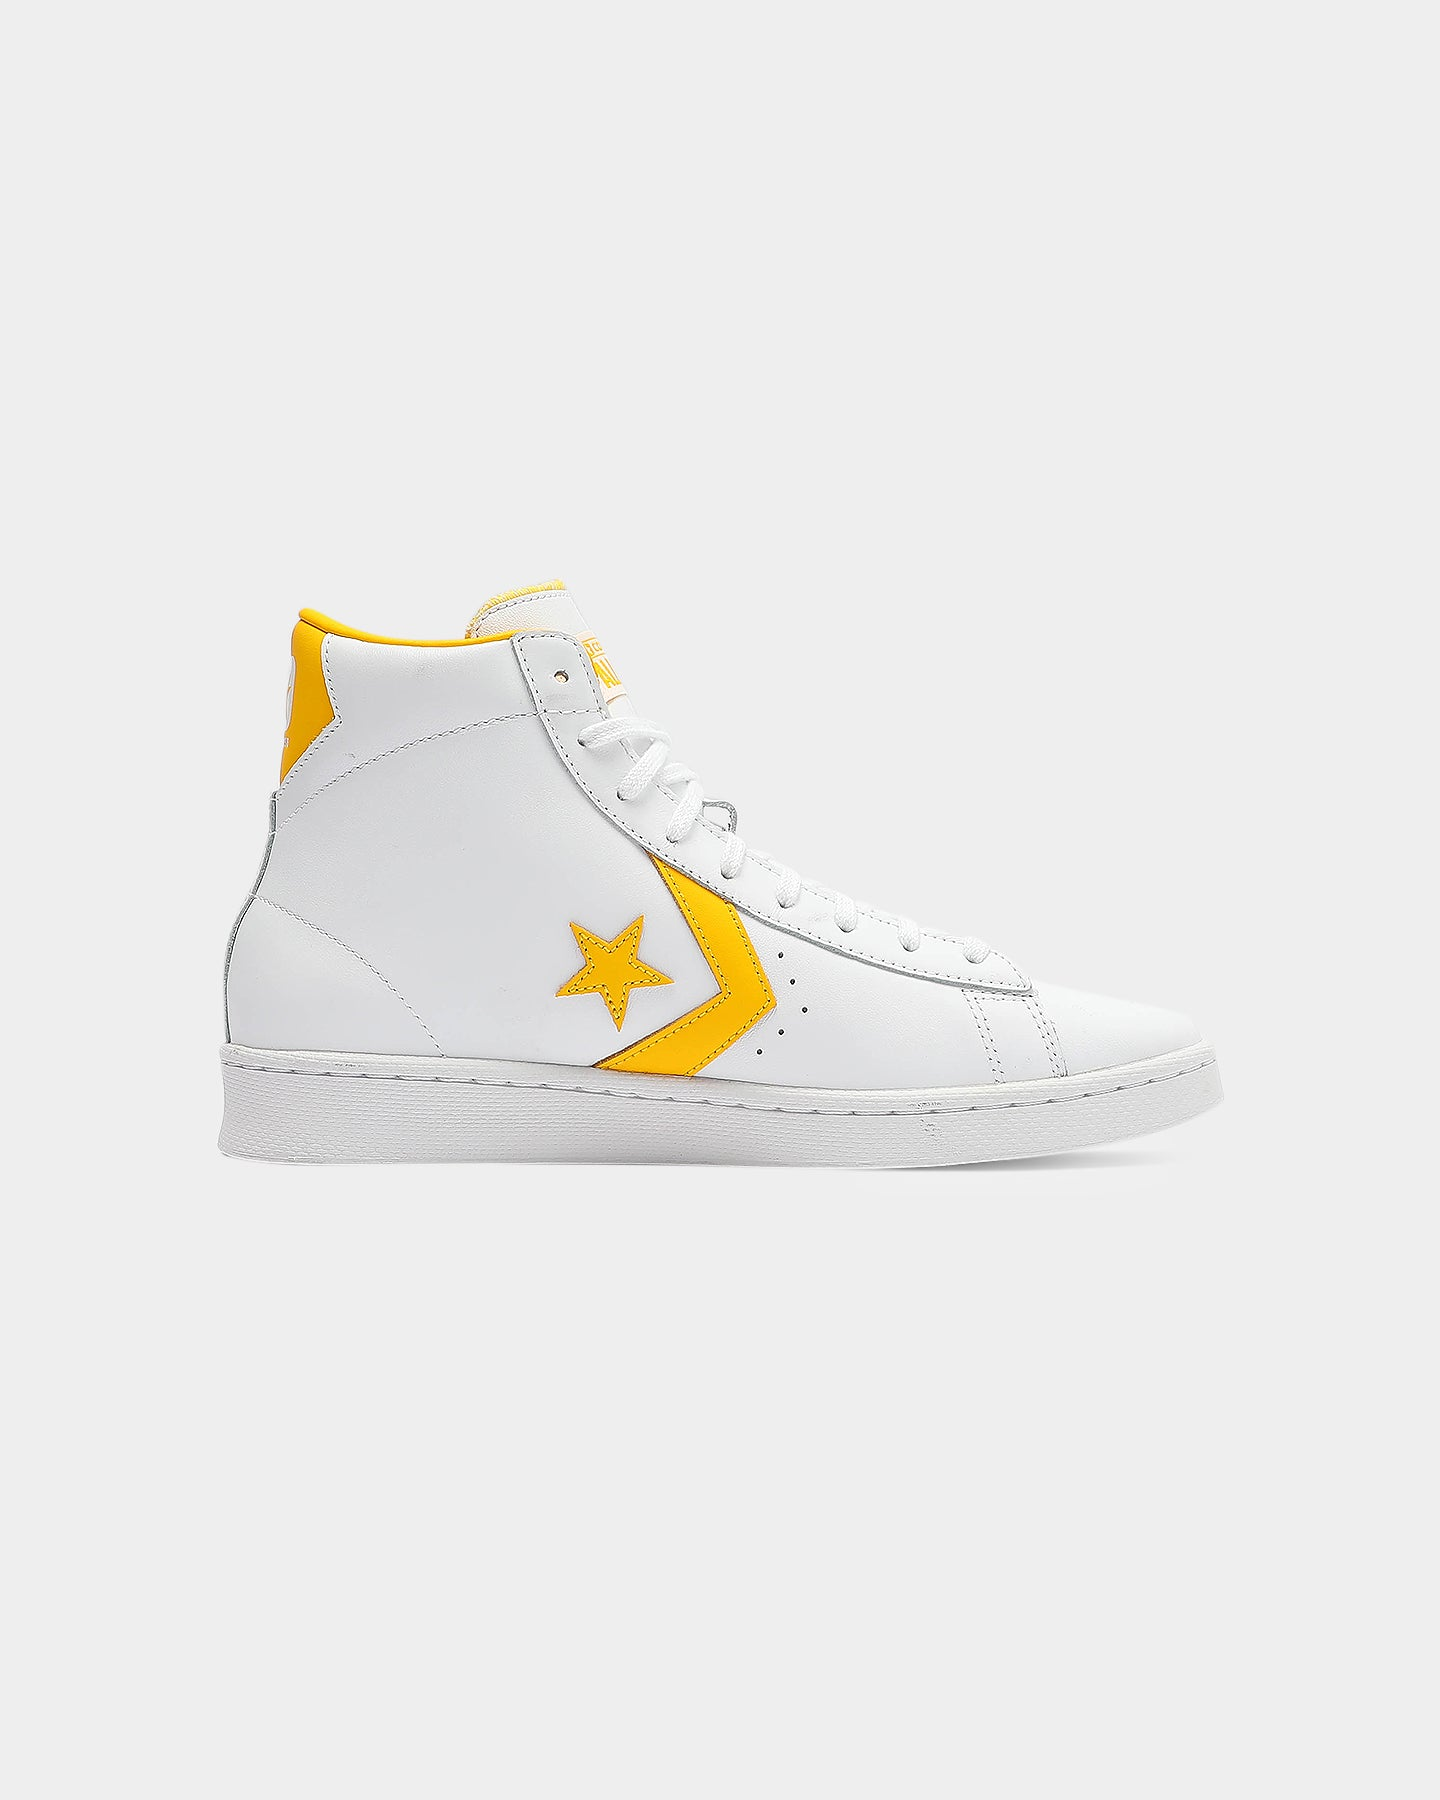 Converse Pro Leather white and yellow casual shoes for men and women, sneakers